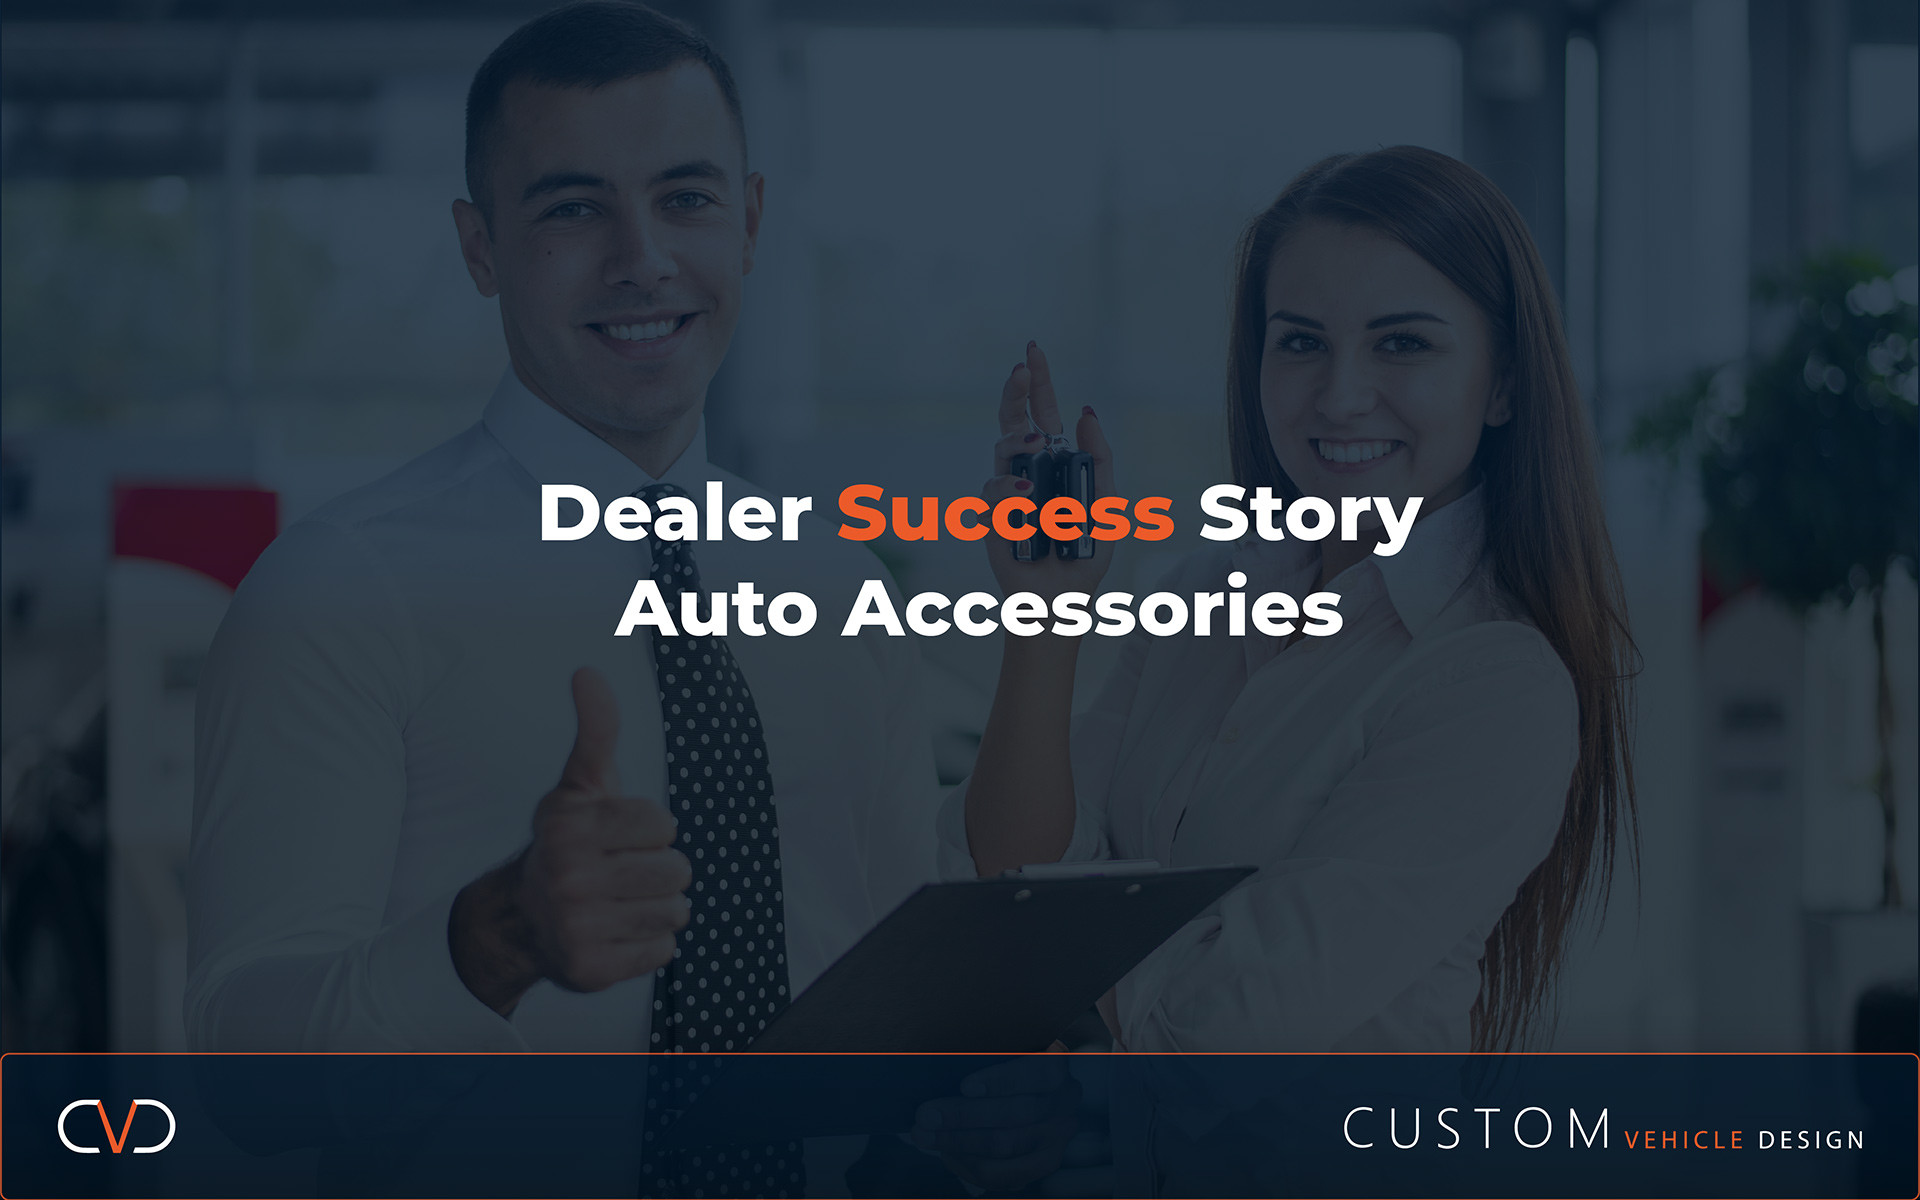 Auto Accessories: Dealer Success Story - Park Place Lexus, Plano, TX